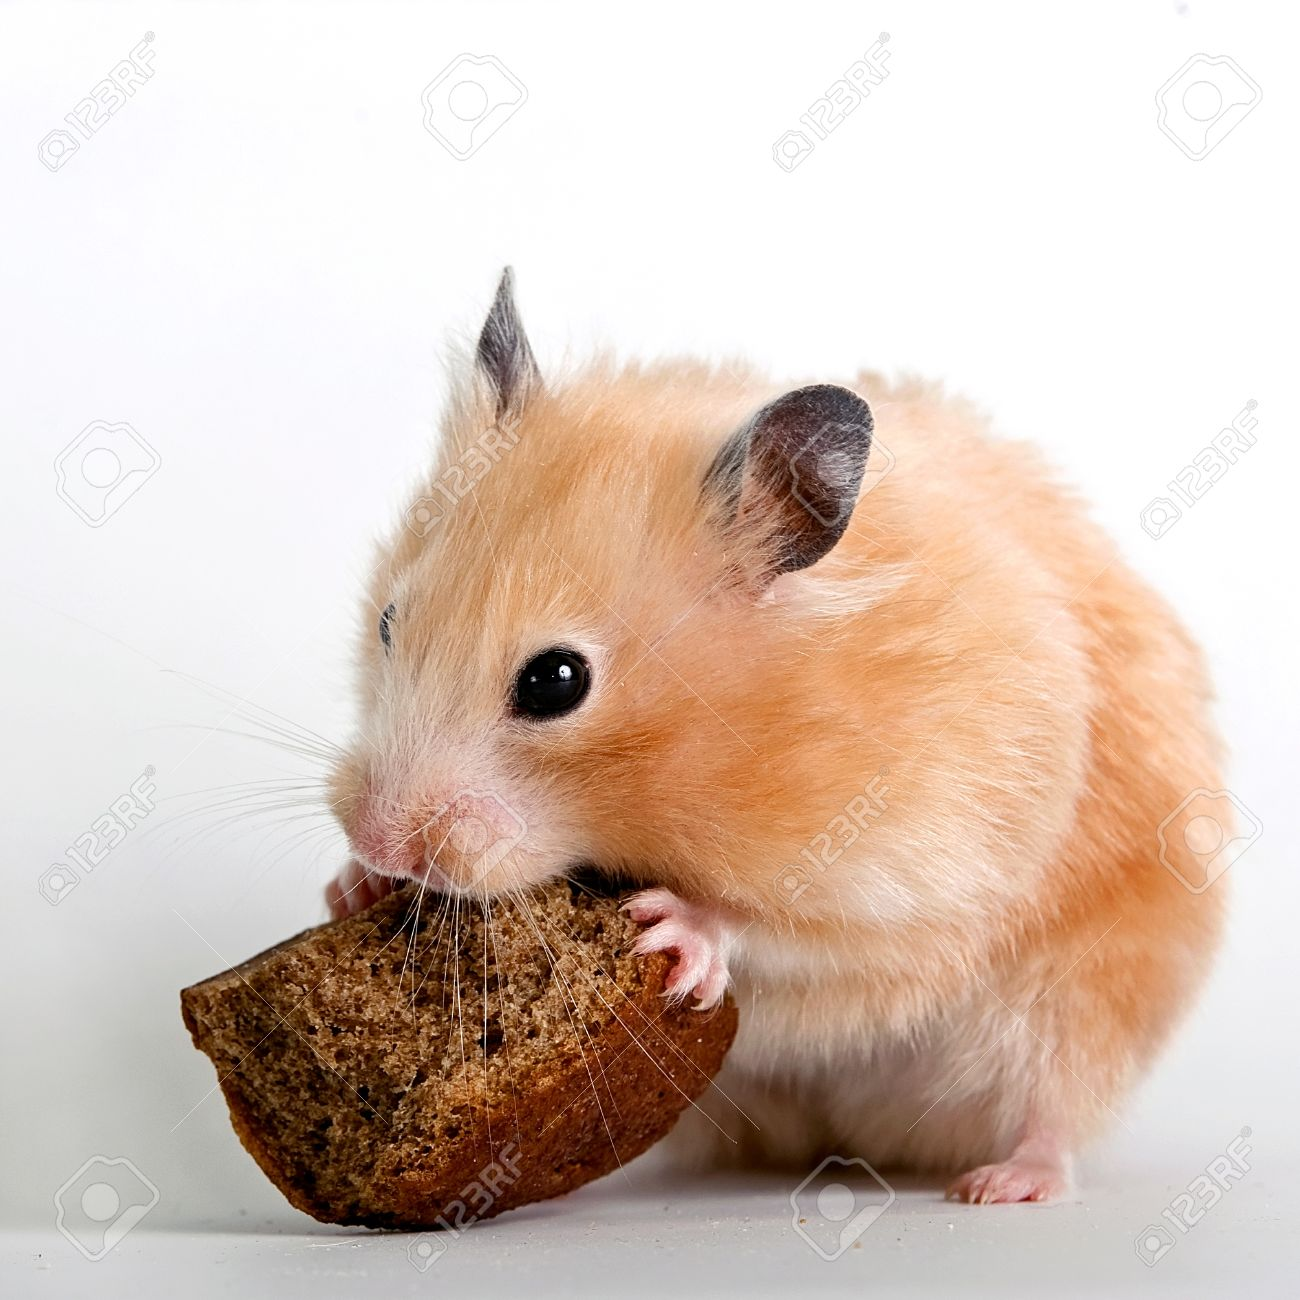 Beige hamster with a bread crust on a white background Standard-Bild - 14432320